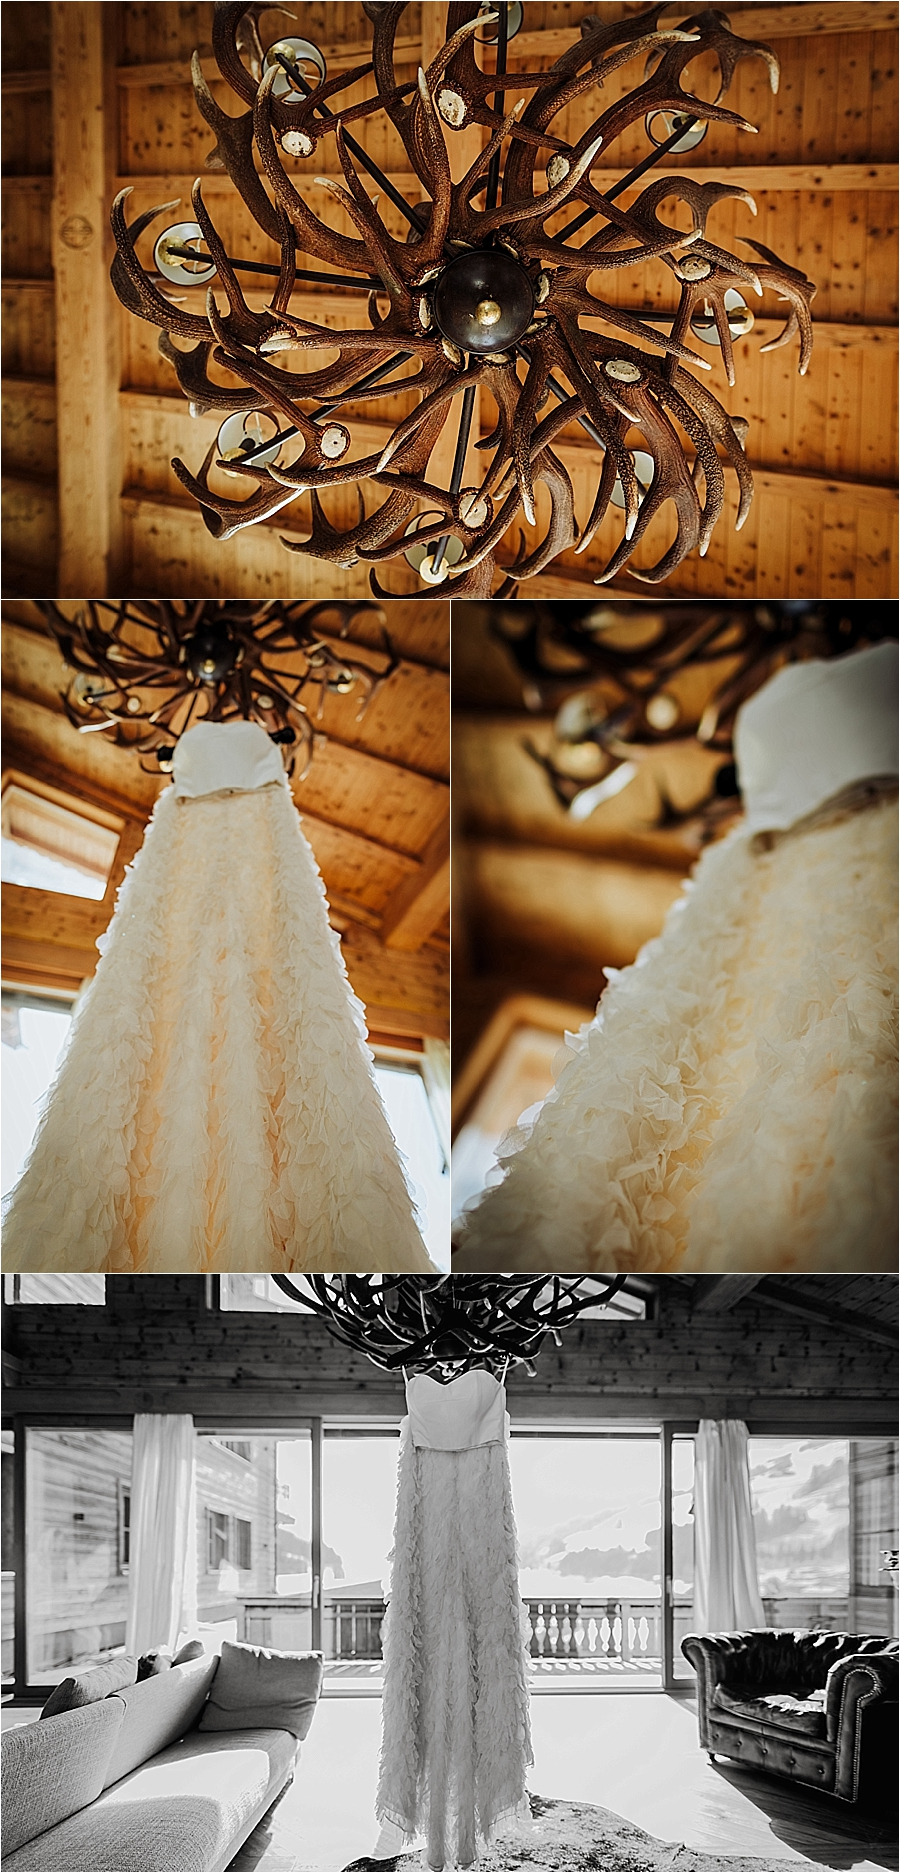 A stunning Halfpenny London wedding dress for this winter ski chalet wedding in the Kitzbühler Alps by Wild Connections Photography